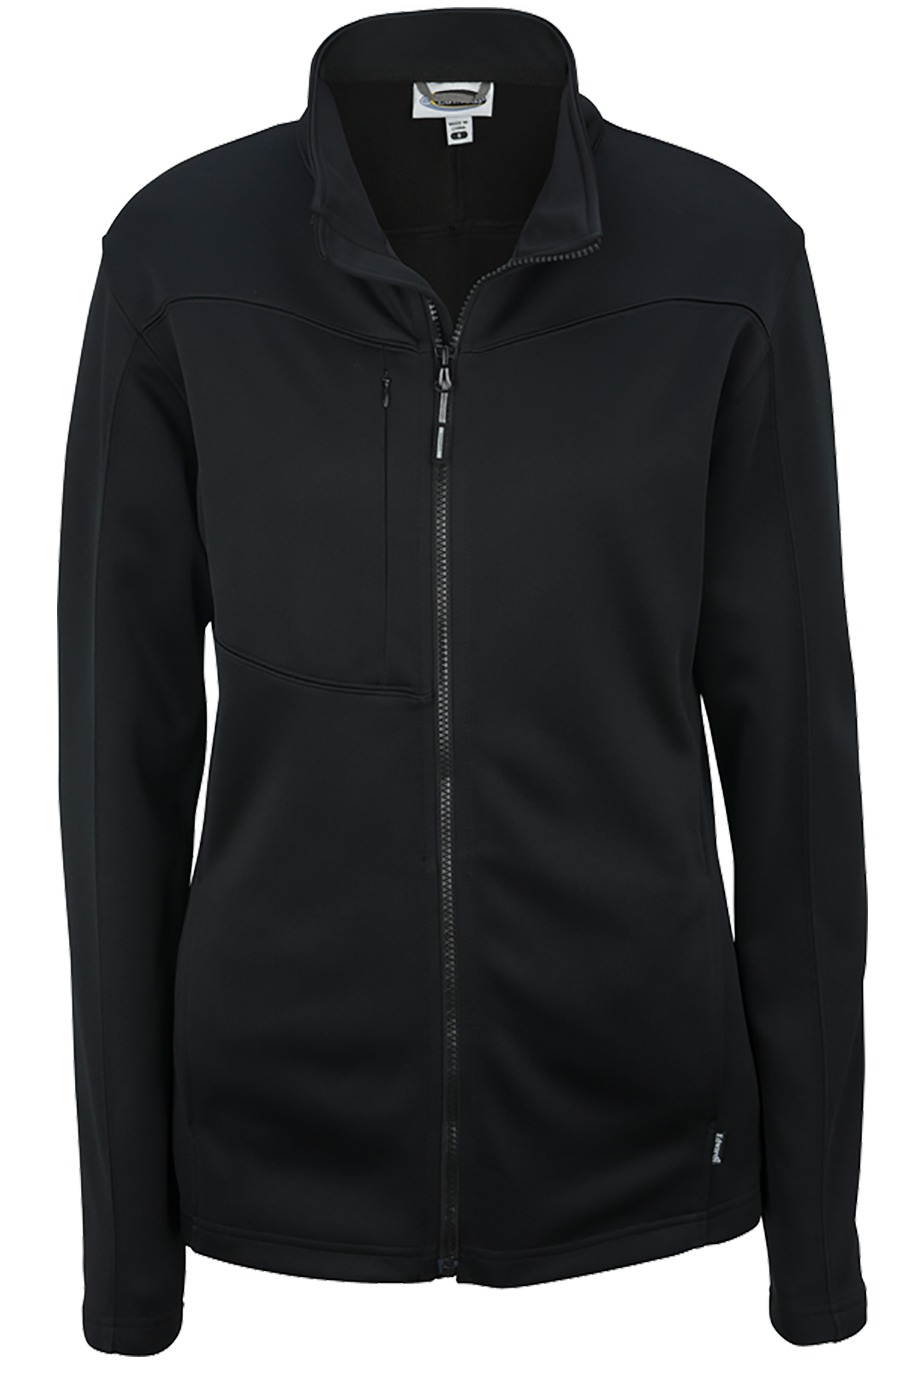 Edwards Garment 6440 - Women's Performance Tek Jacket